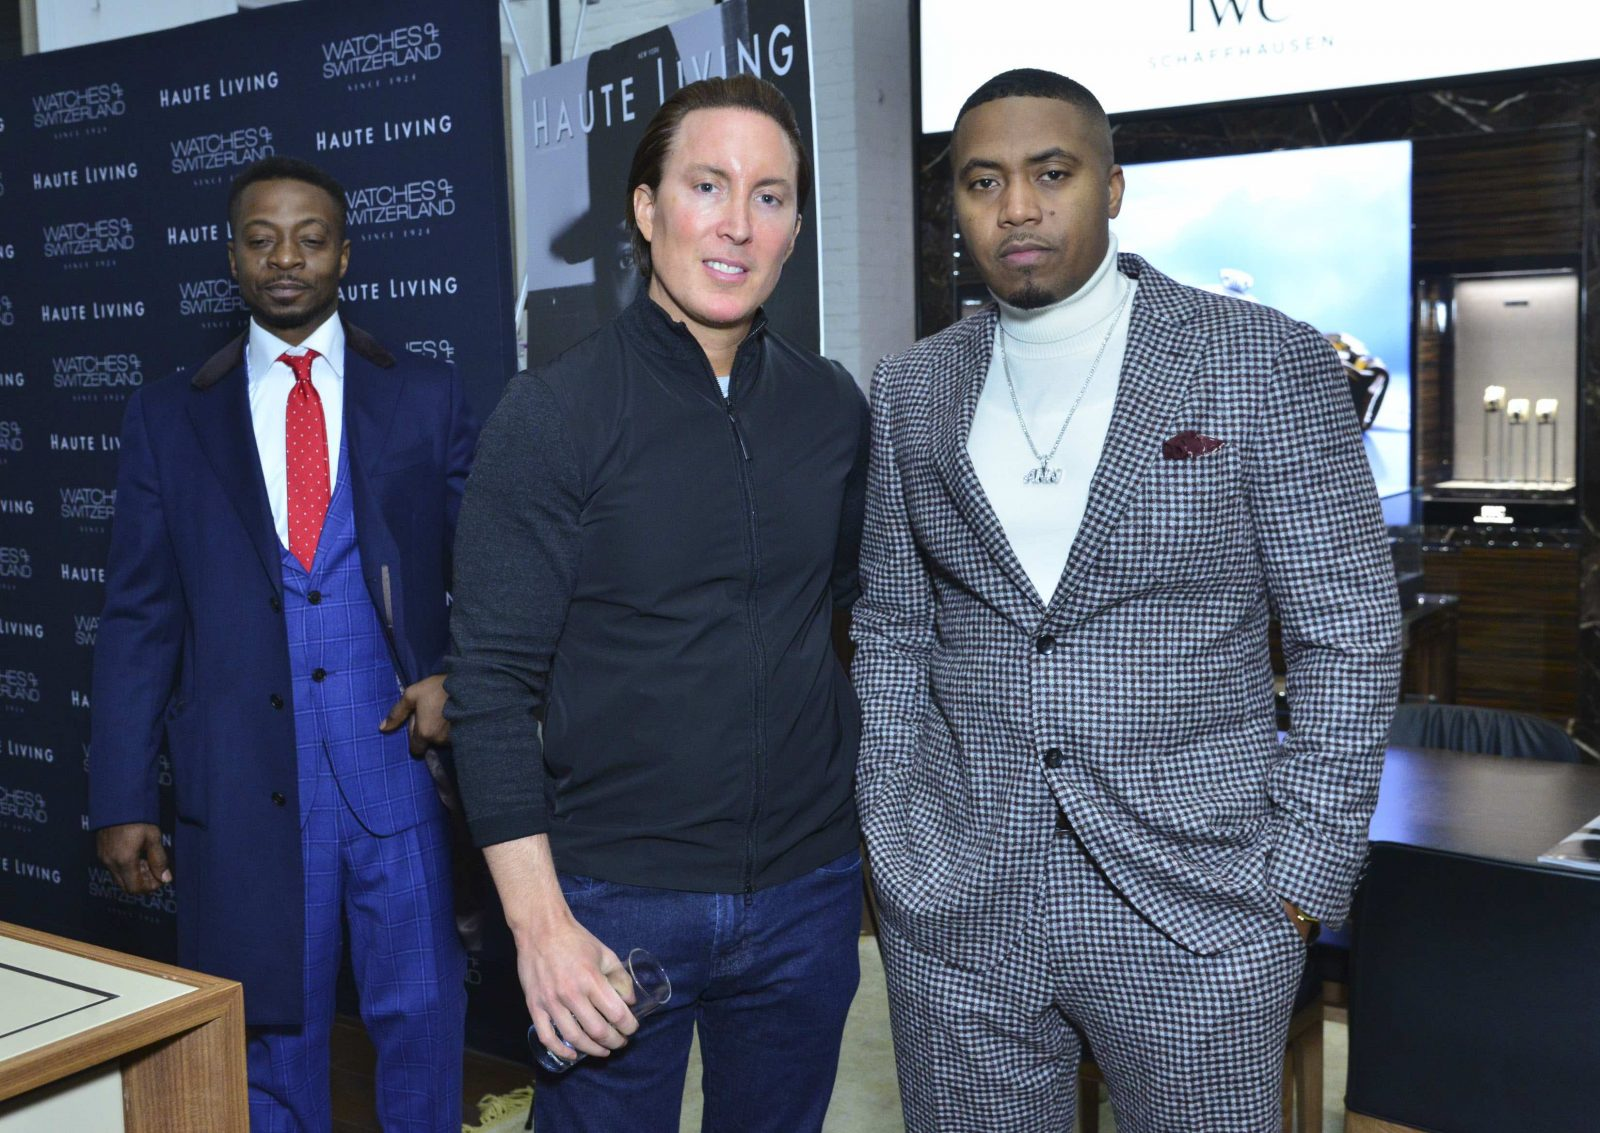 Daniel Neiditch and Nas